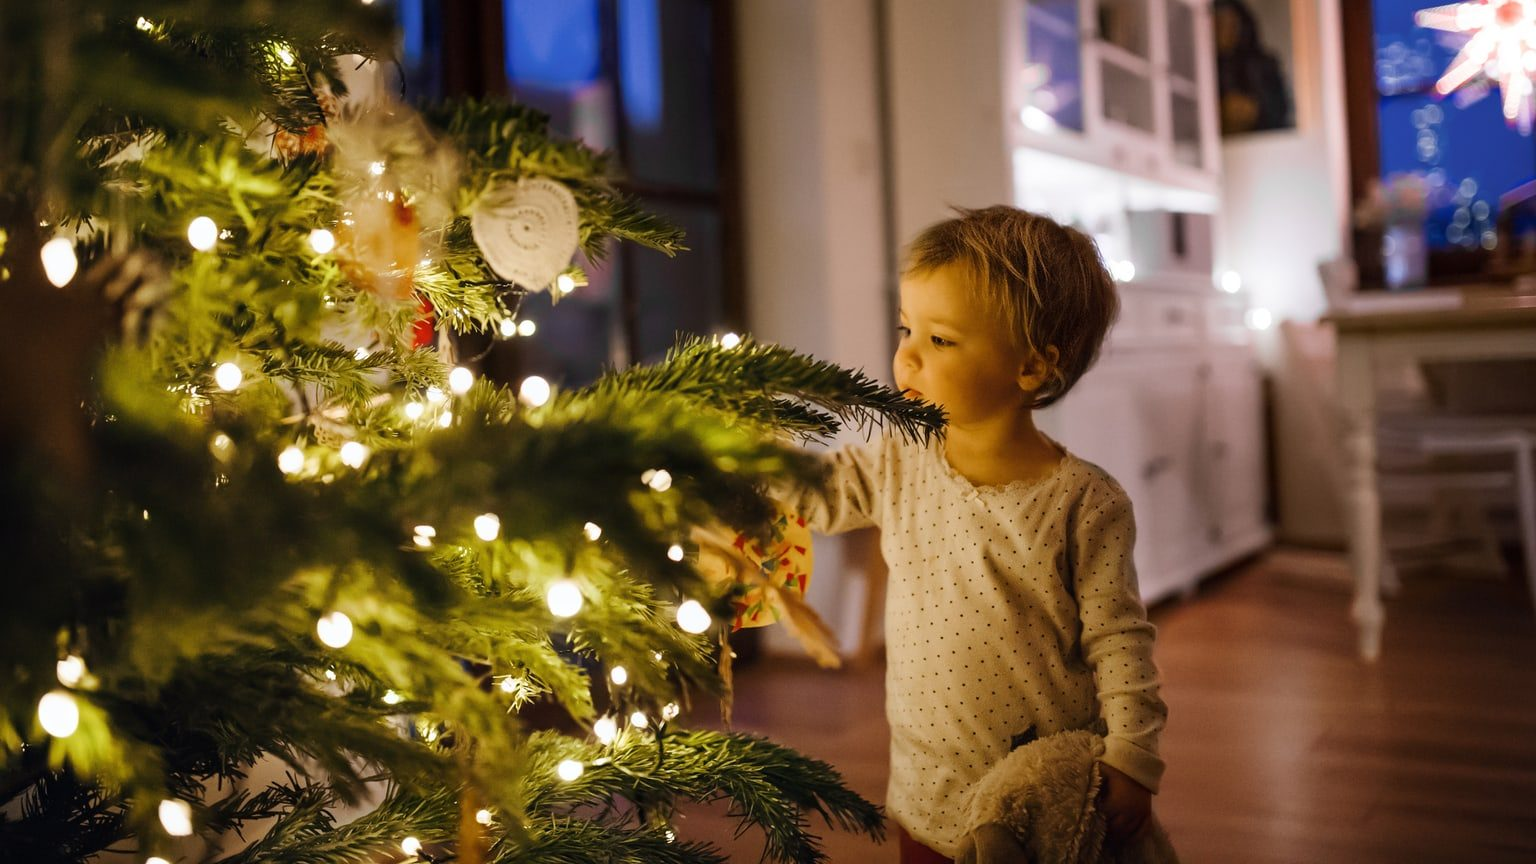 Little girl touching a decorated Christmas tree in her home